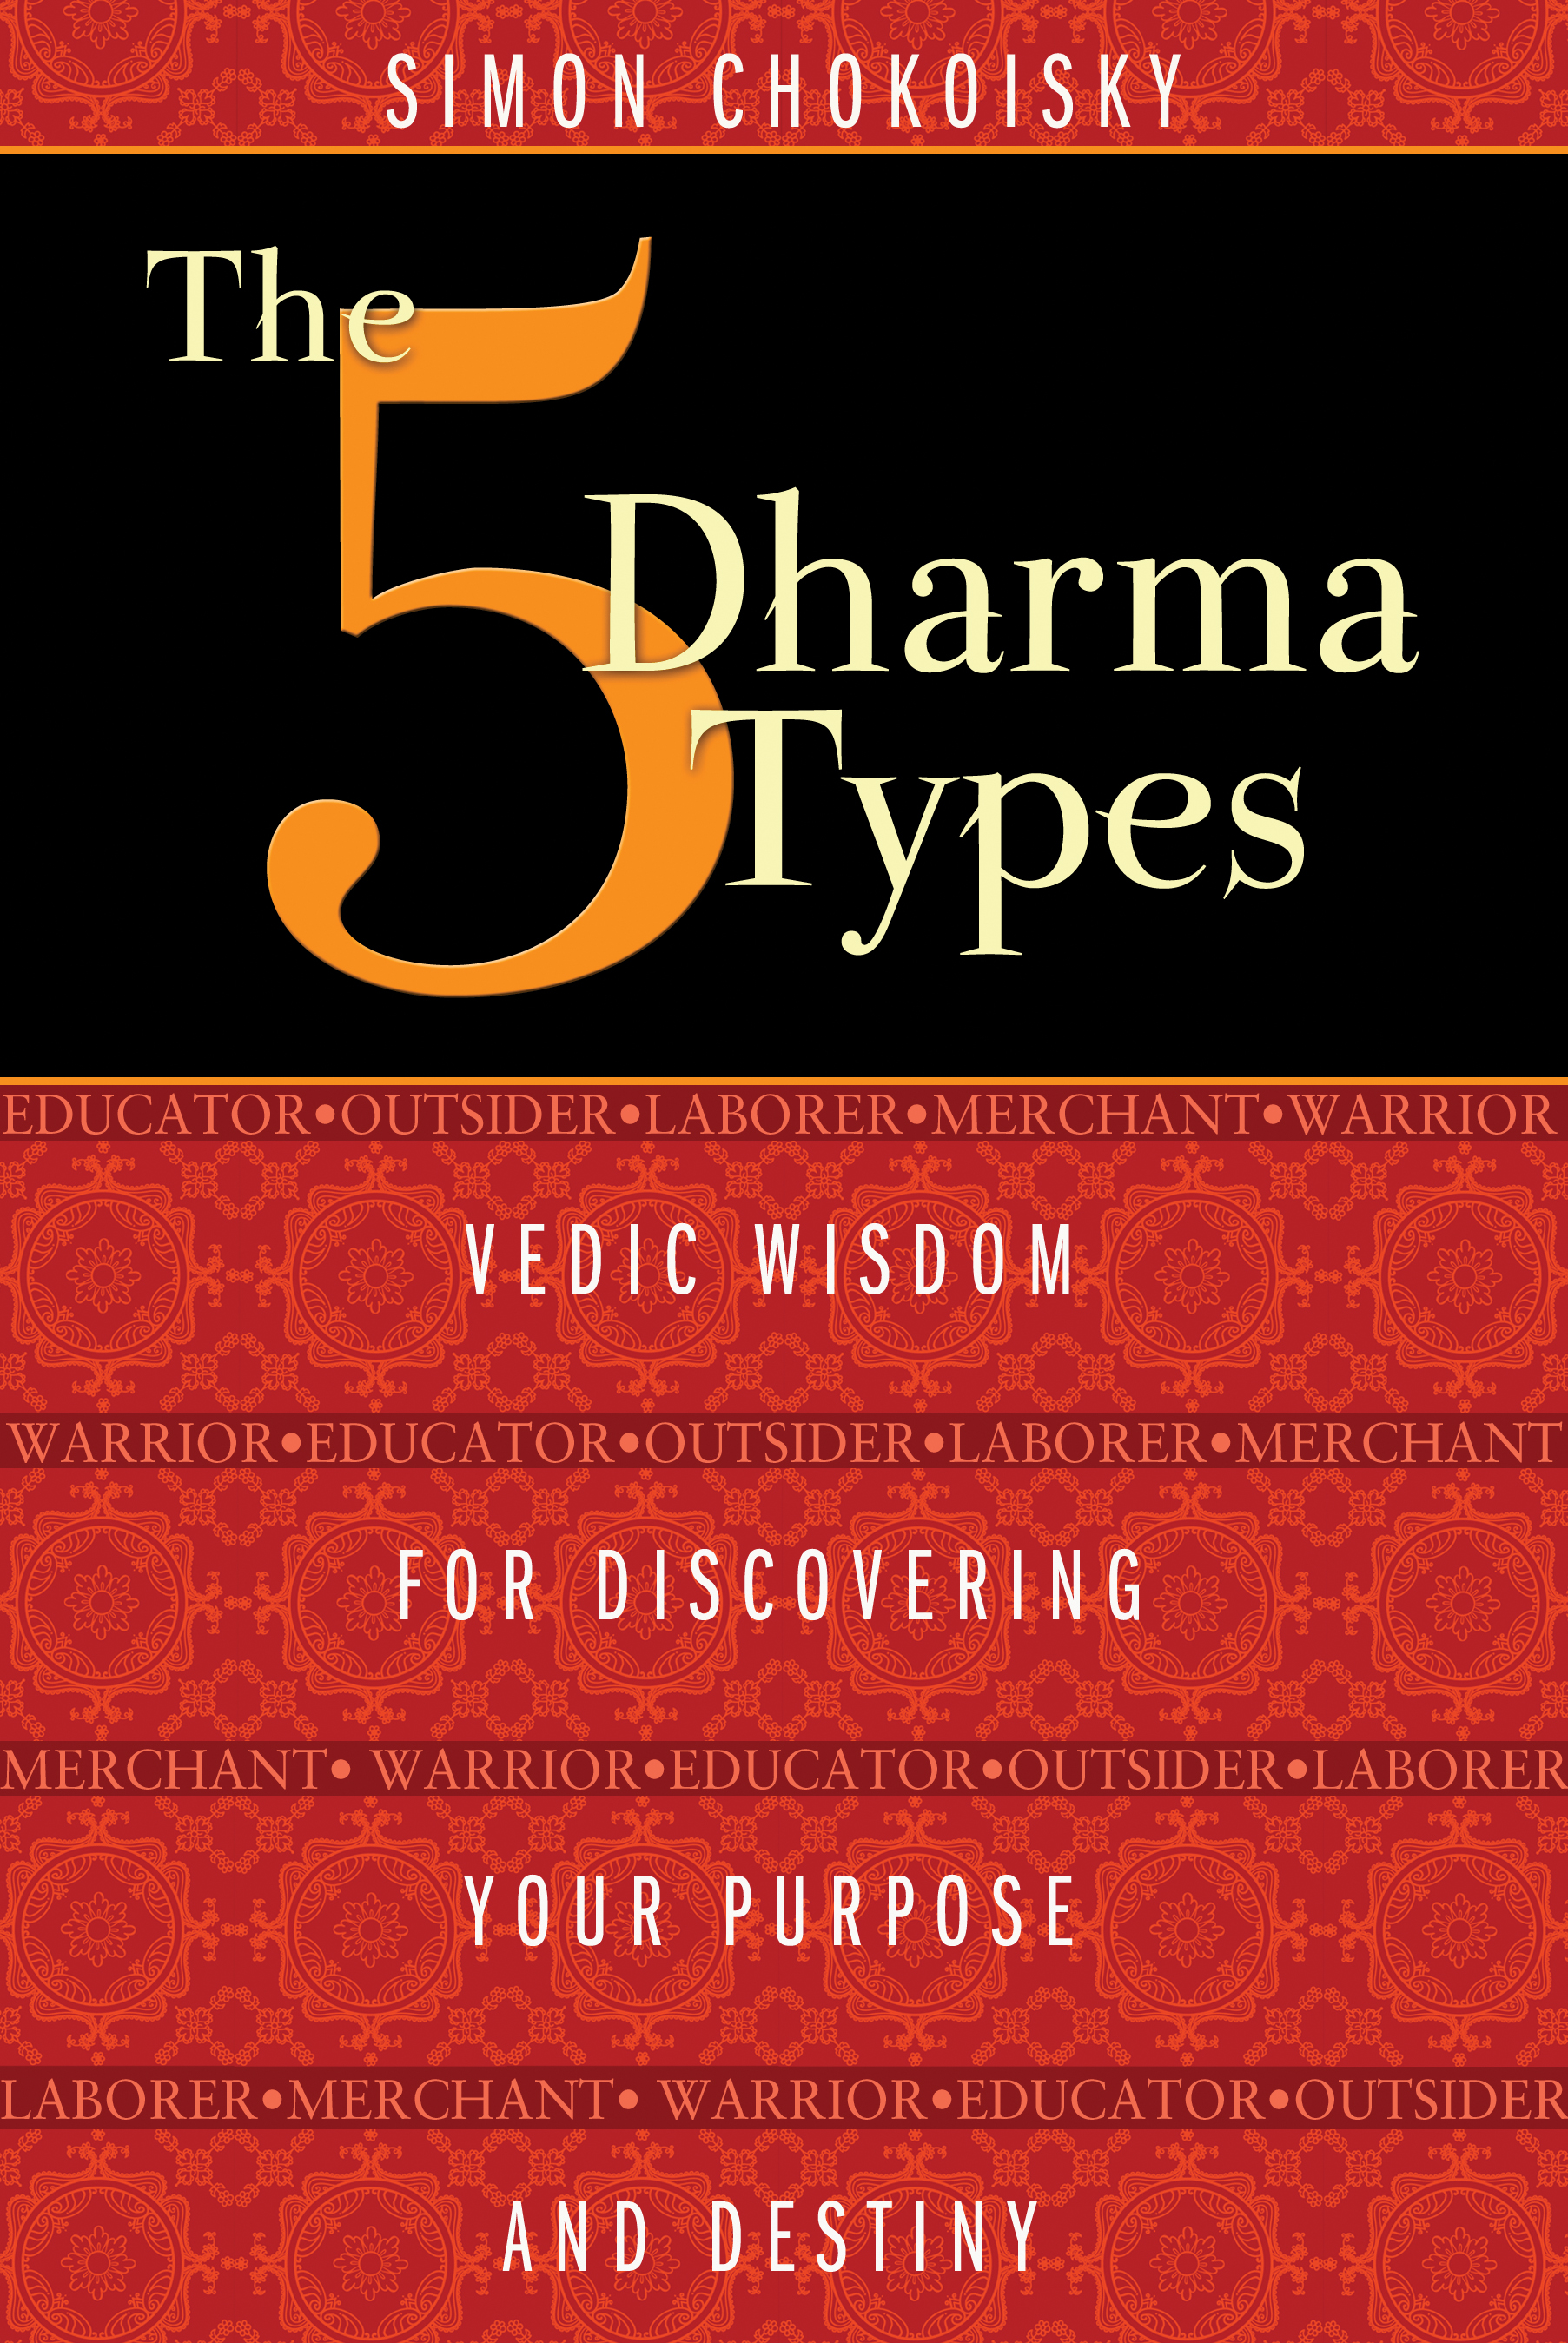 Five-dharma-types-9781620552834_hr